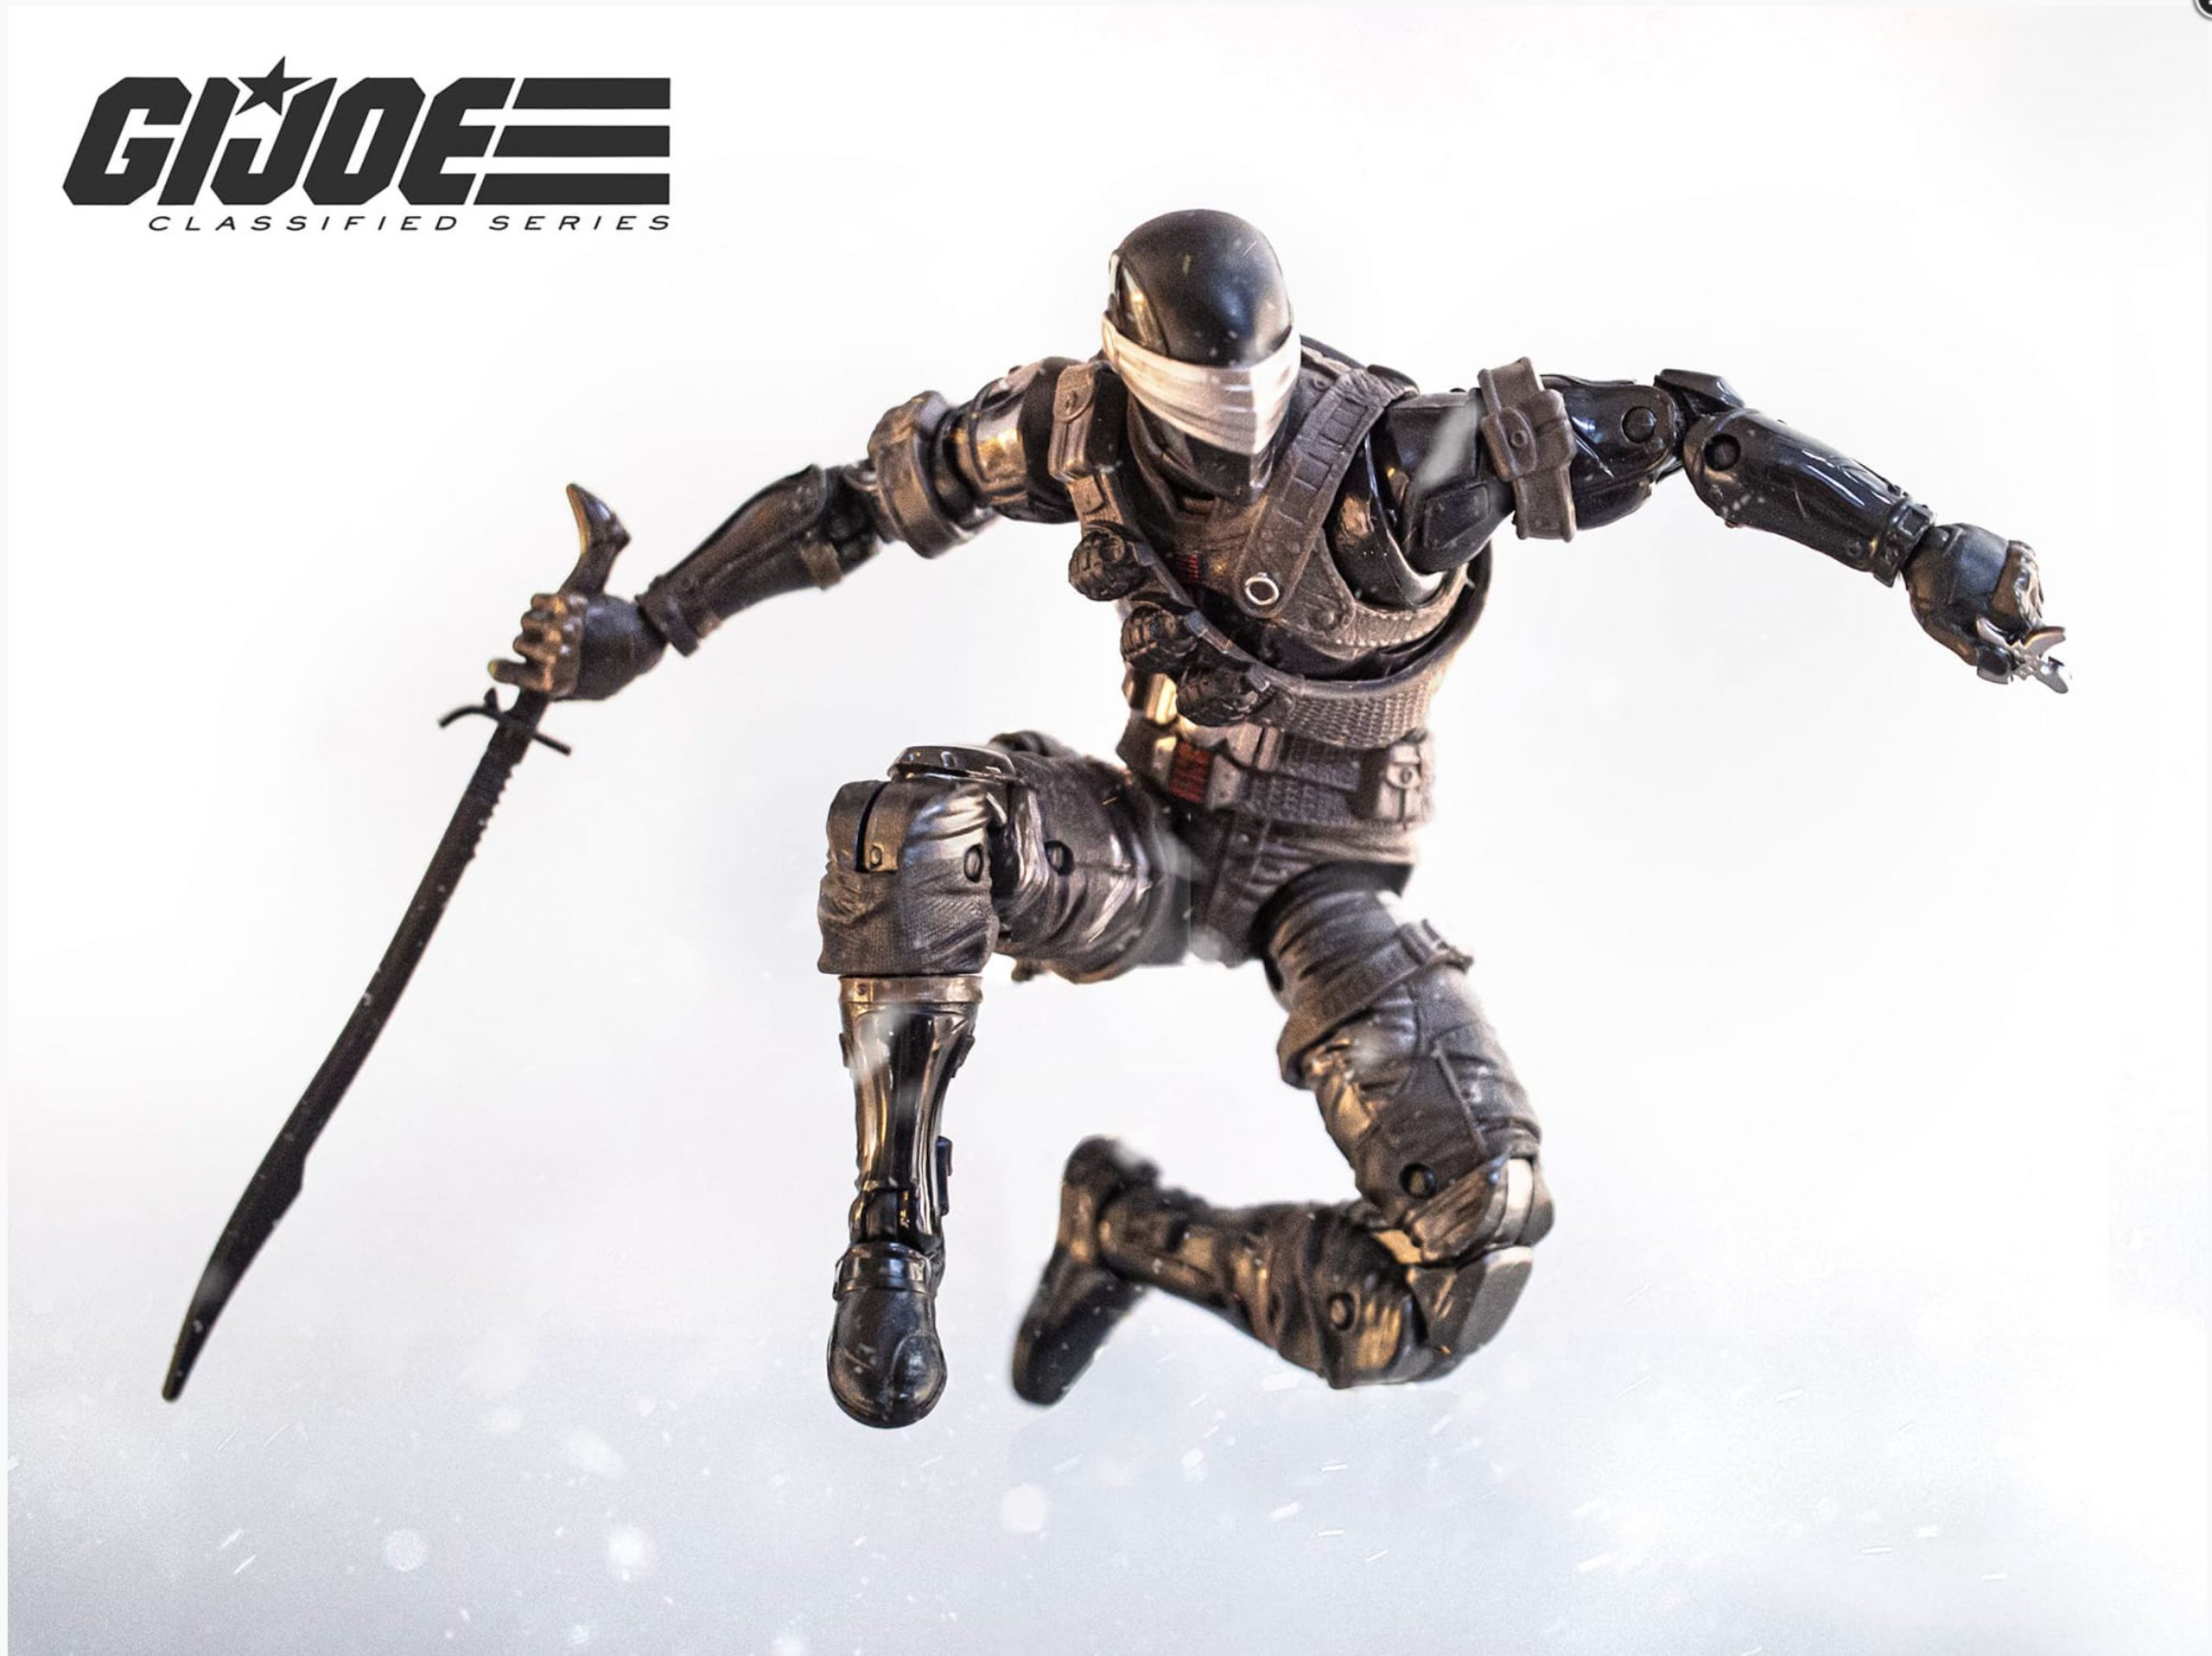 snake-eyes-gi-joe-classified-6-inch-action-figure-5